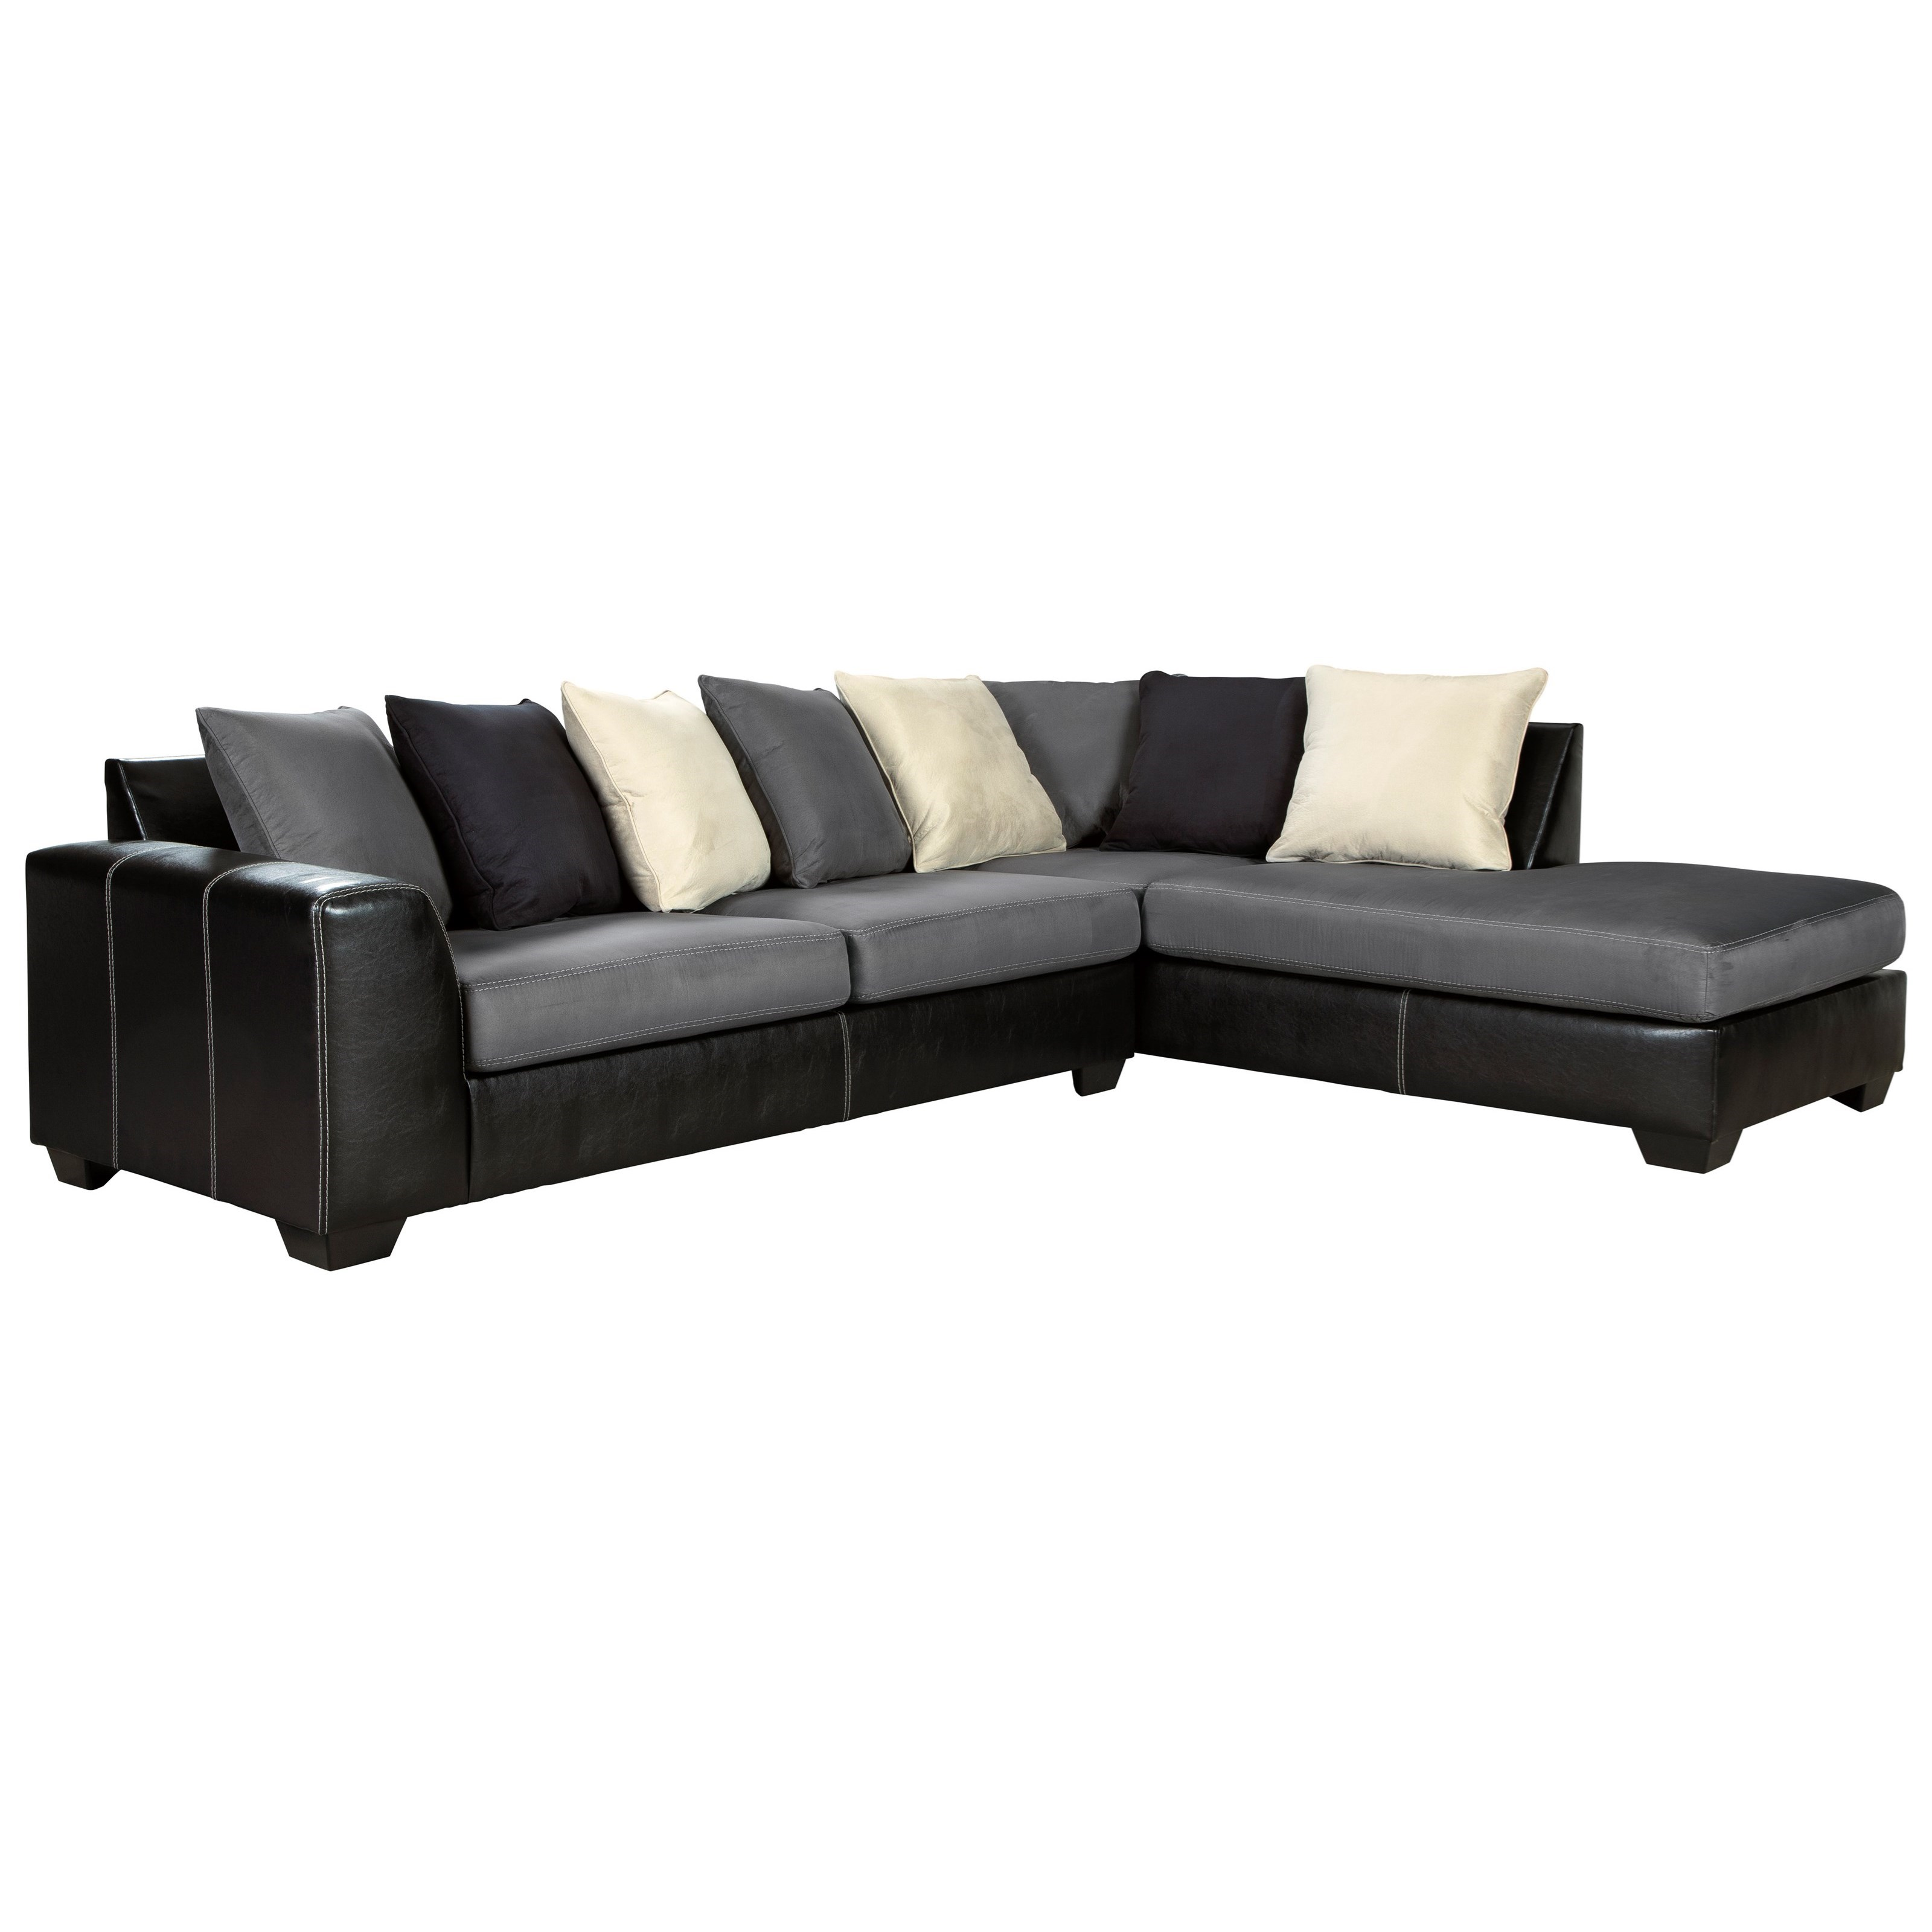 Jacurso Sectional Sofa with Chaise